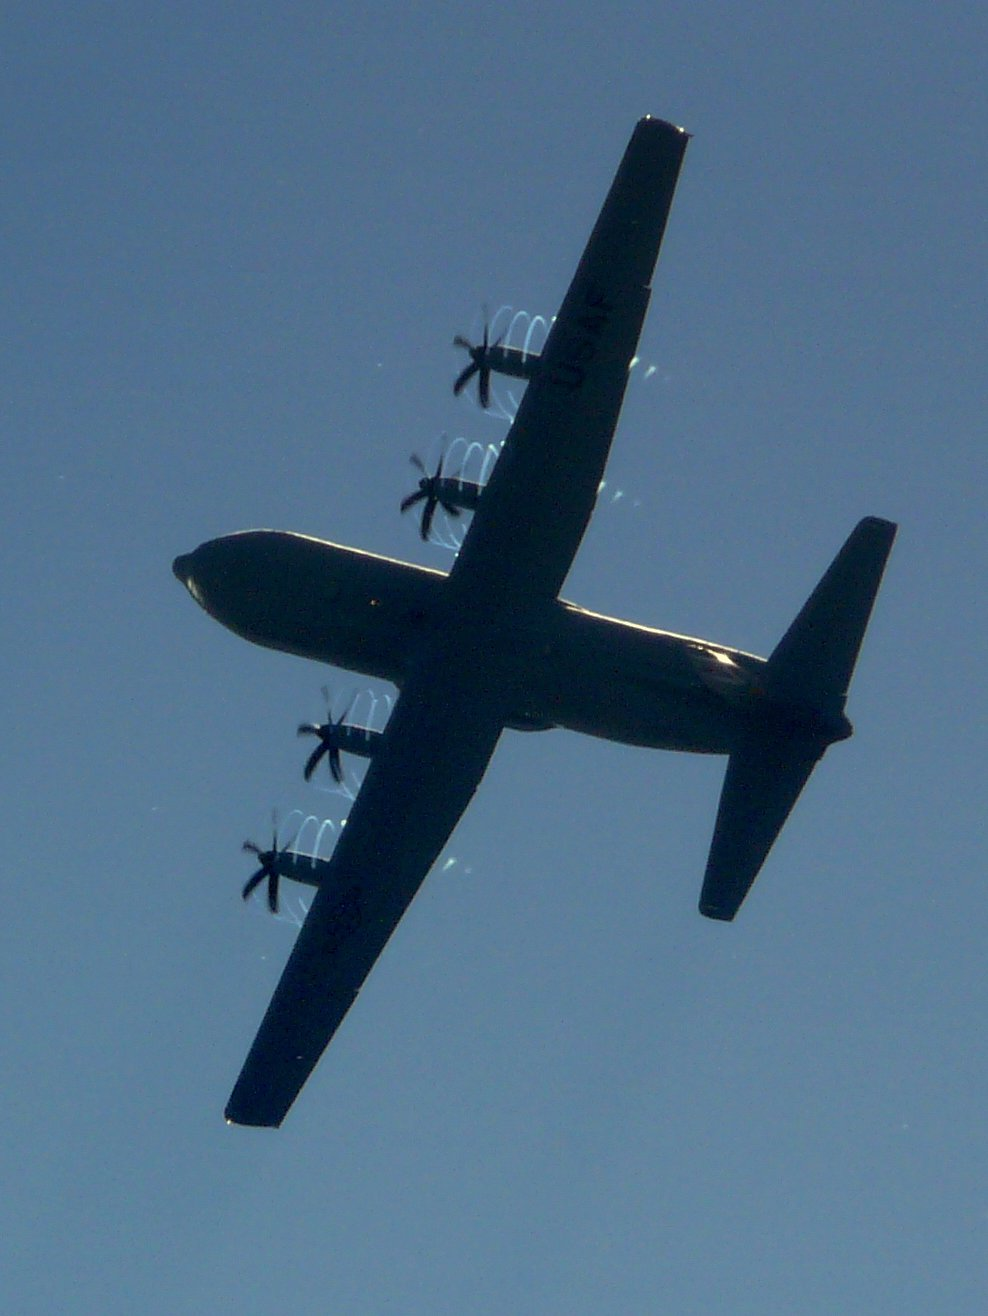 C130J Prop Vortices at Farnborough Airshow 2010